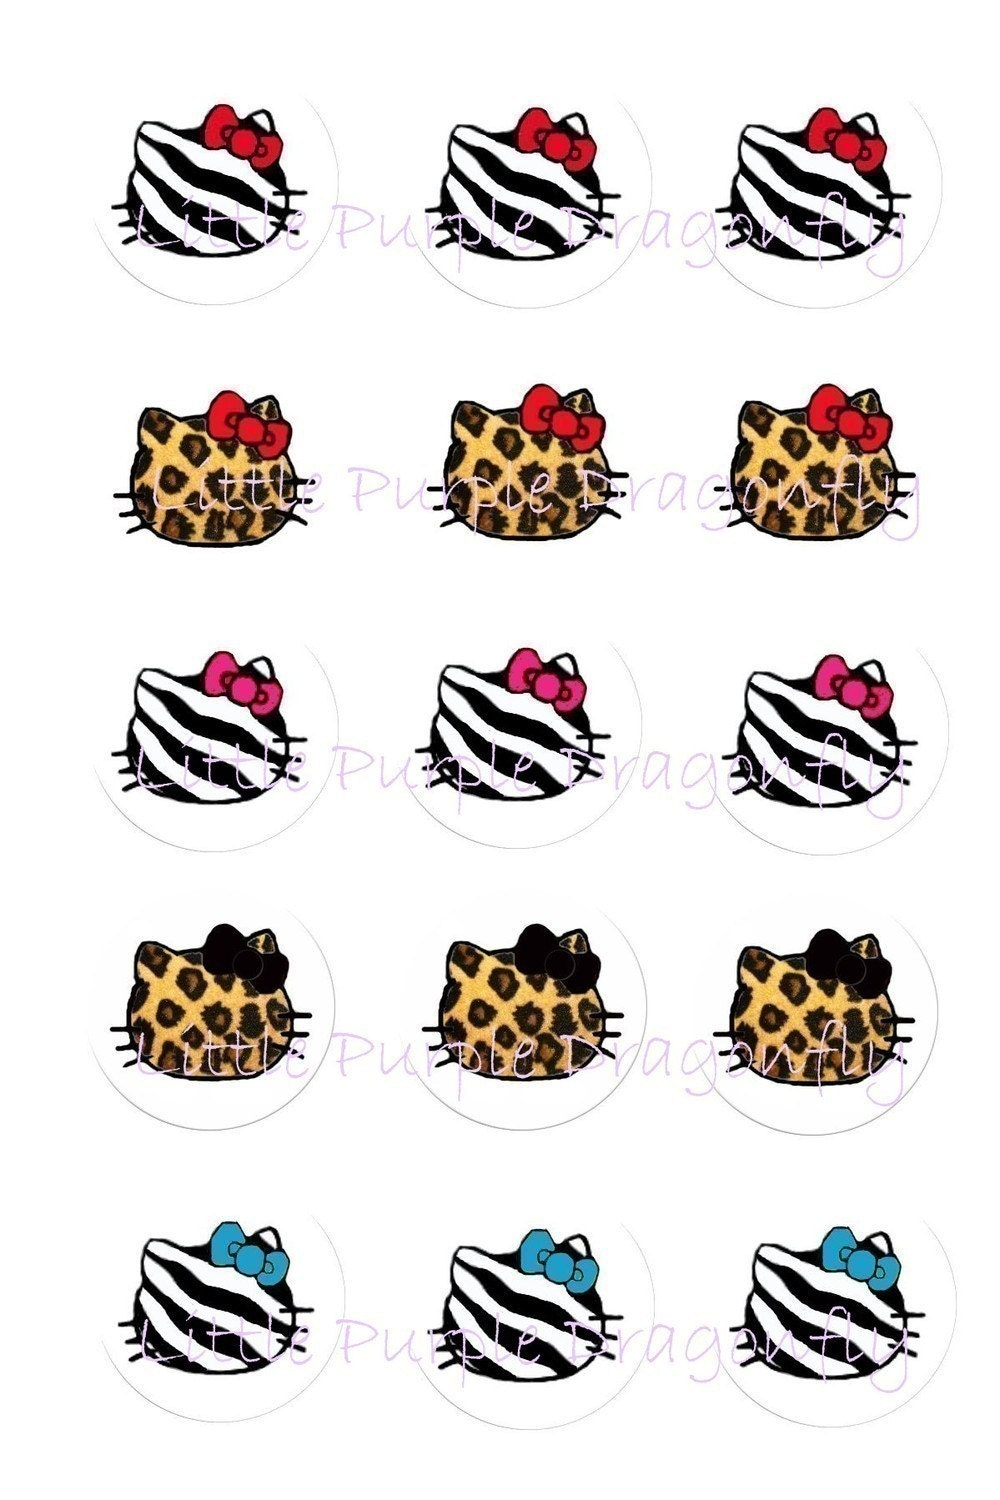 Hello Kitty Animal Print No Face 1 inch circles for bottle cap pendants,